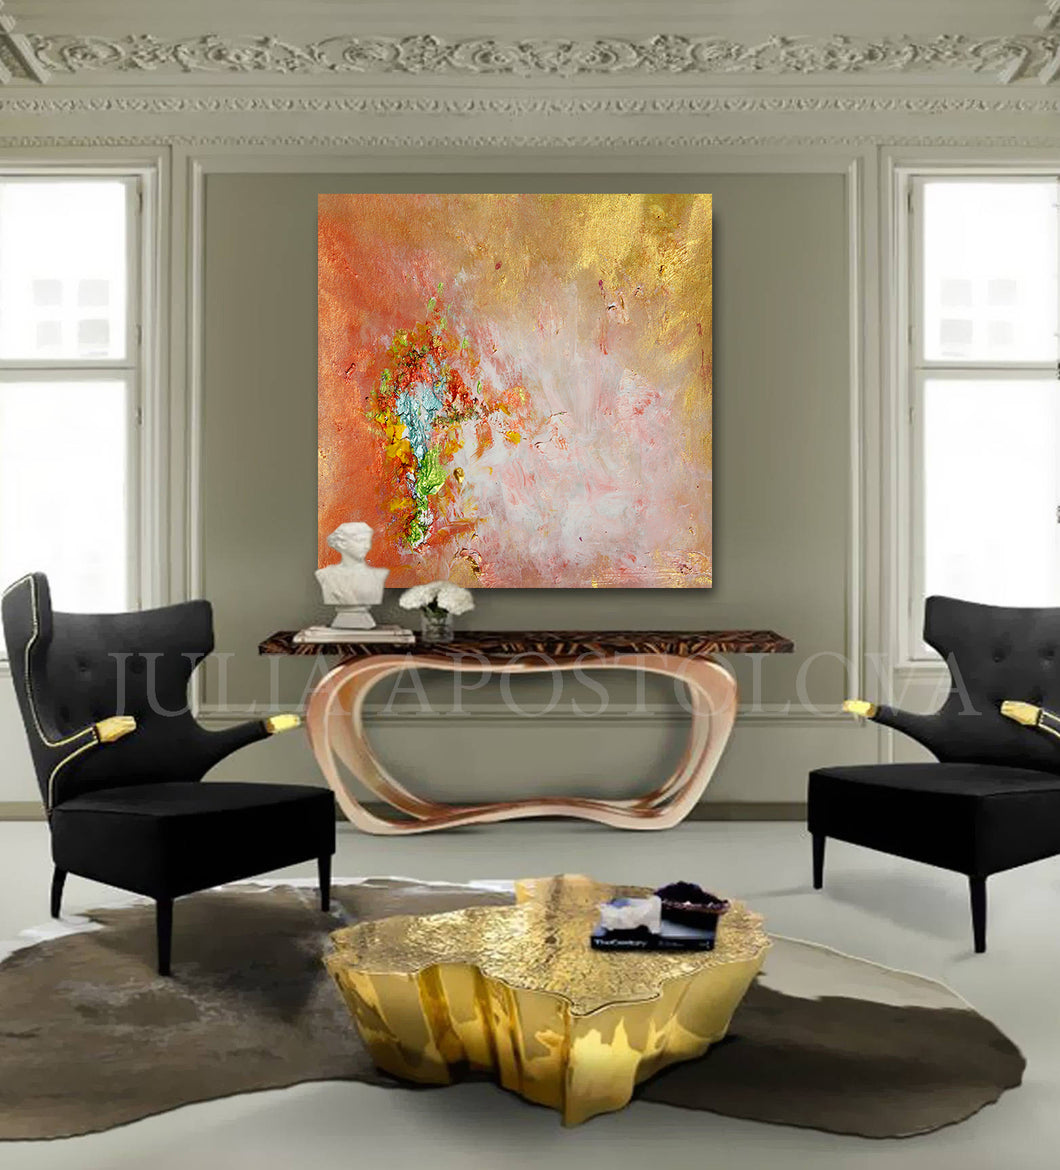 Large Wall Art Abstract, Gold Copper, Minimal Canvas Print, Minimalist Painting, Abstract Print, Modern Home Decor, Interior, InteriorDesigner, Zen Art by Julia Apostolova